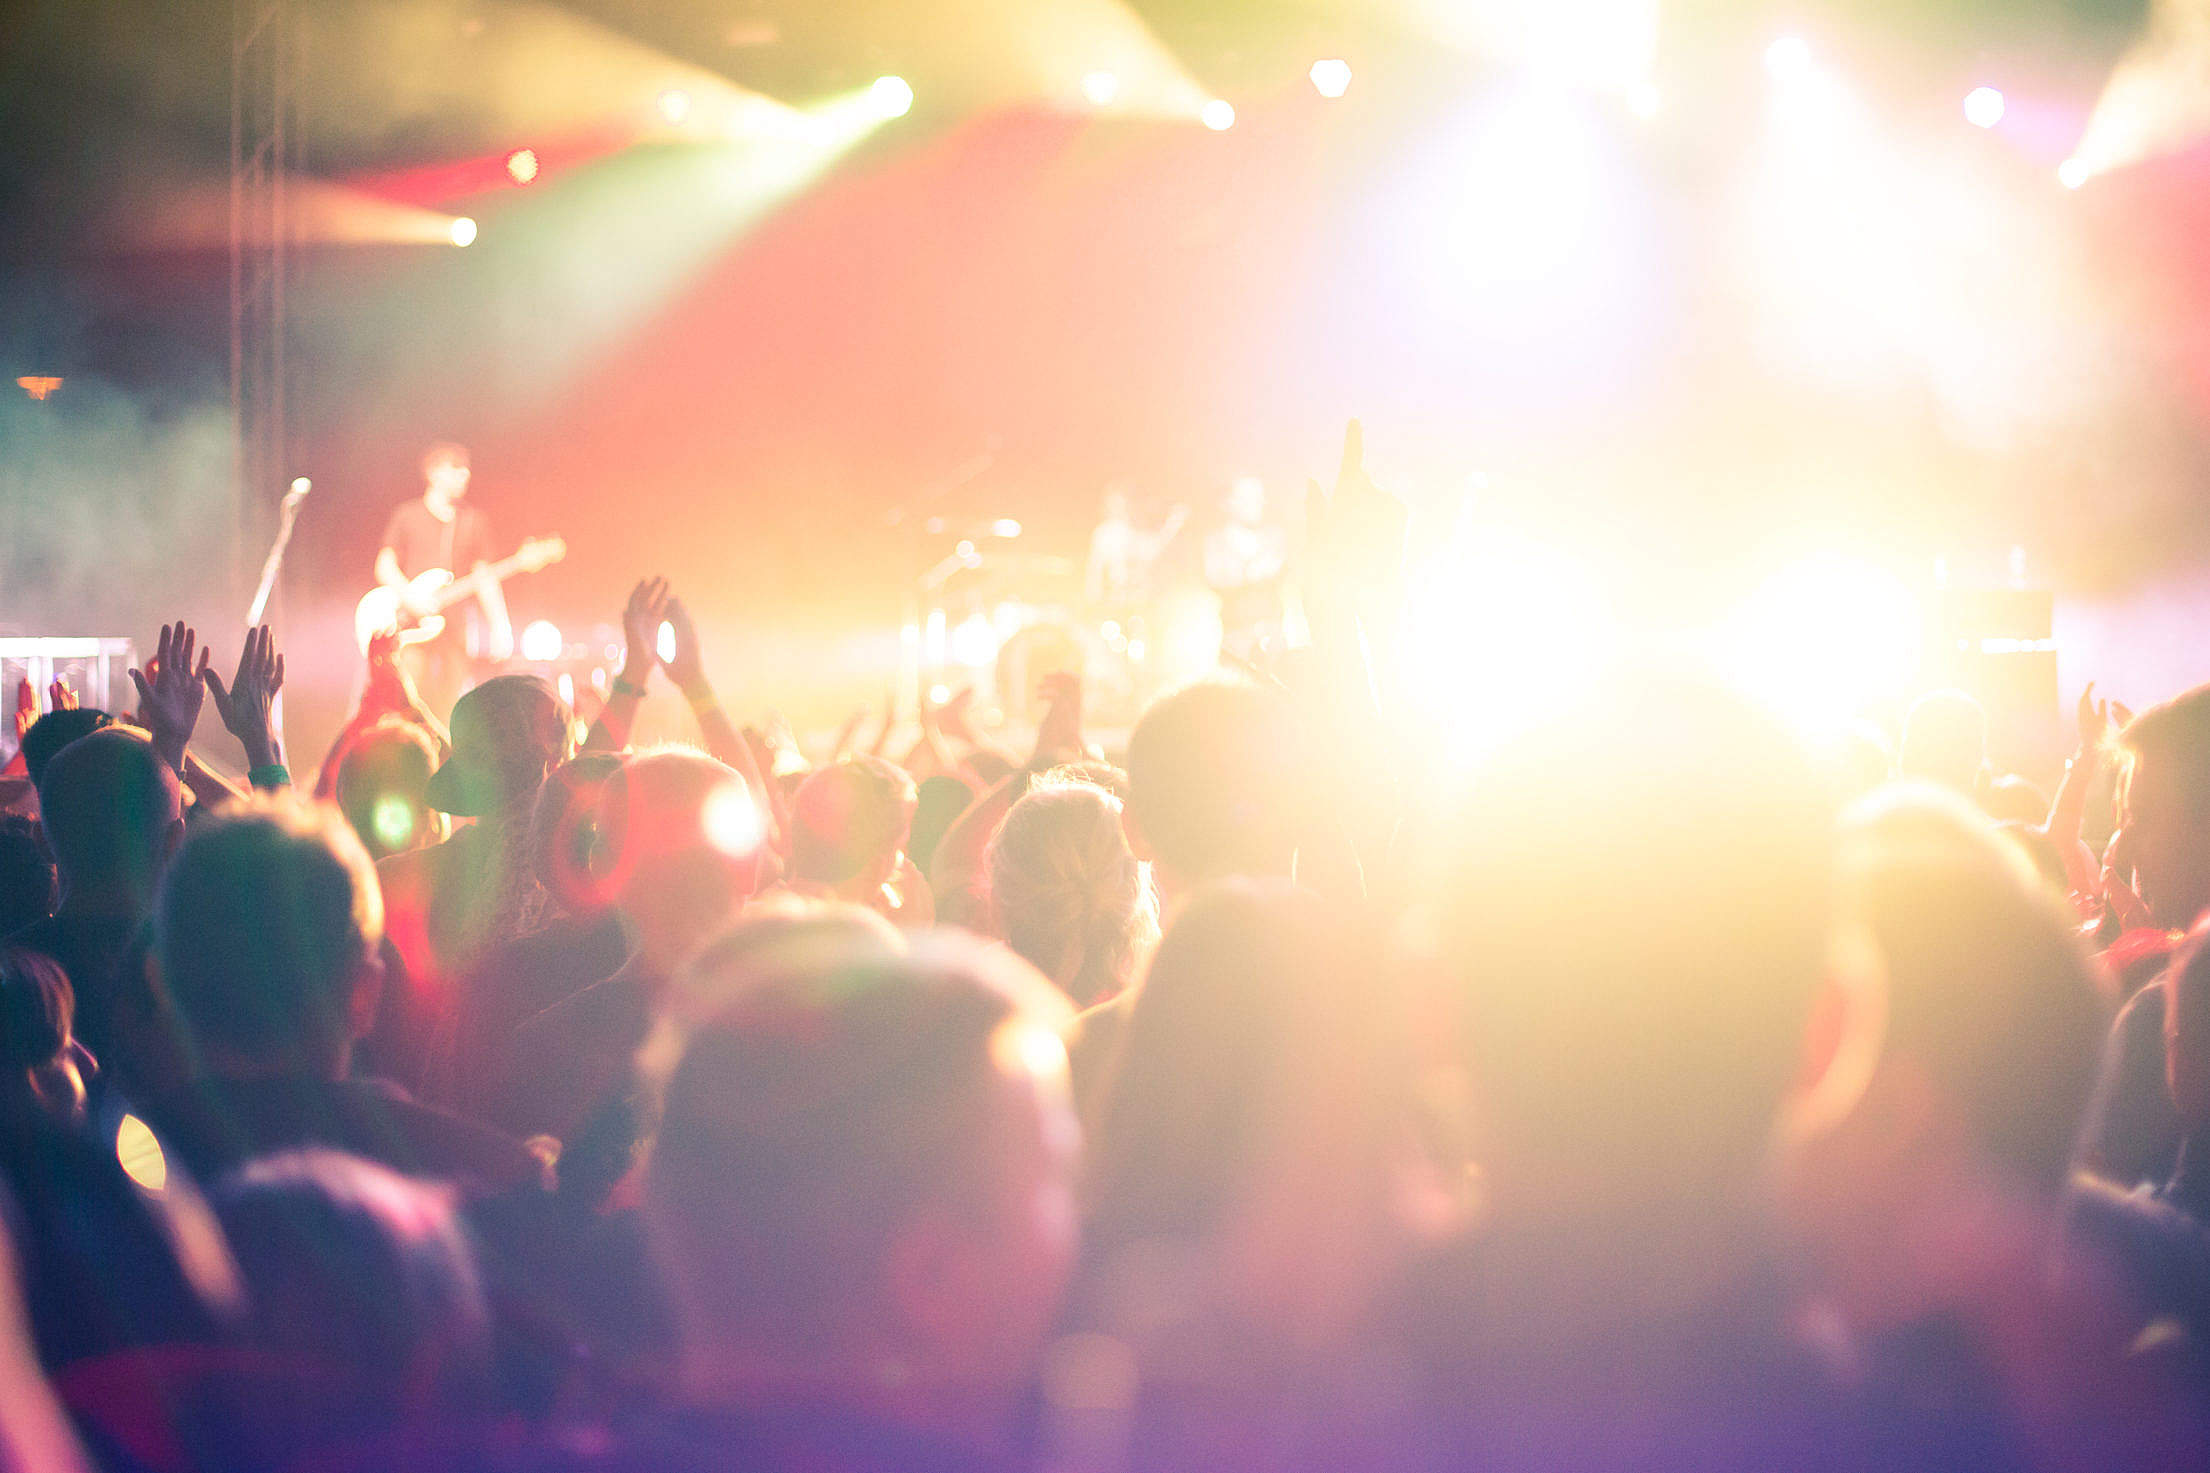 Download Club Night Party Concert Crowd of People Free Stock Photo